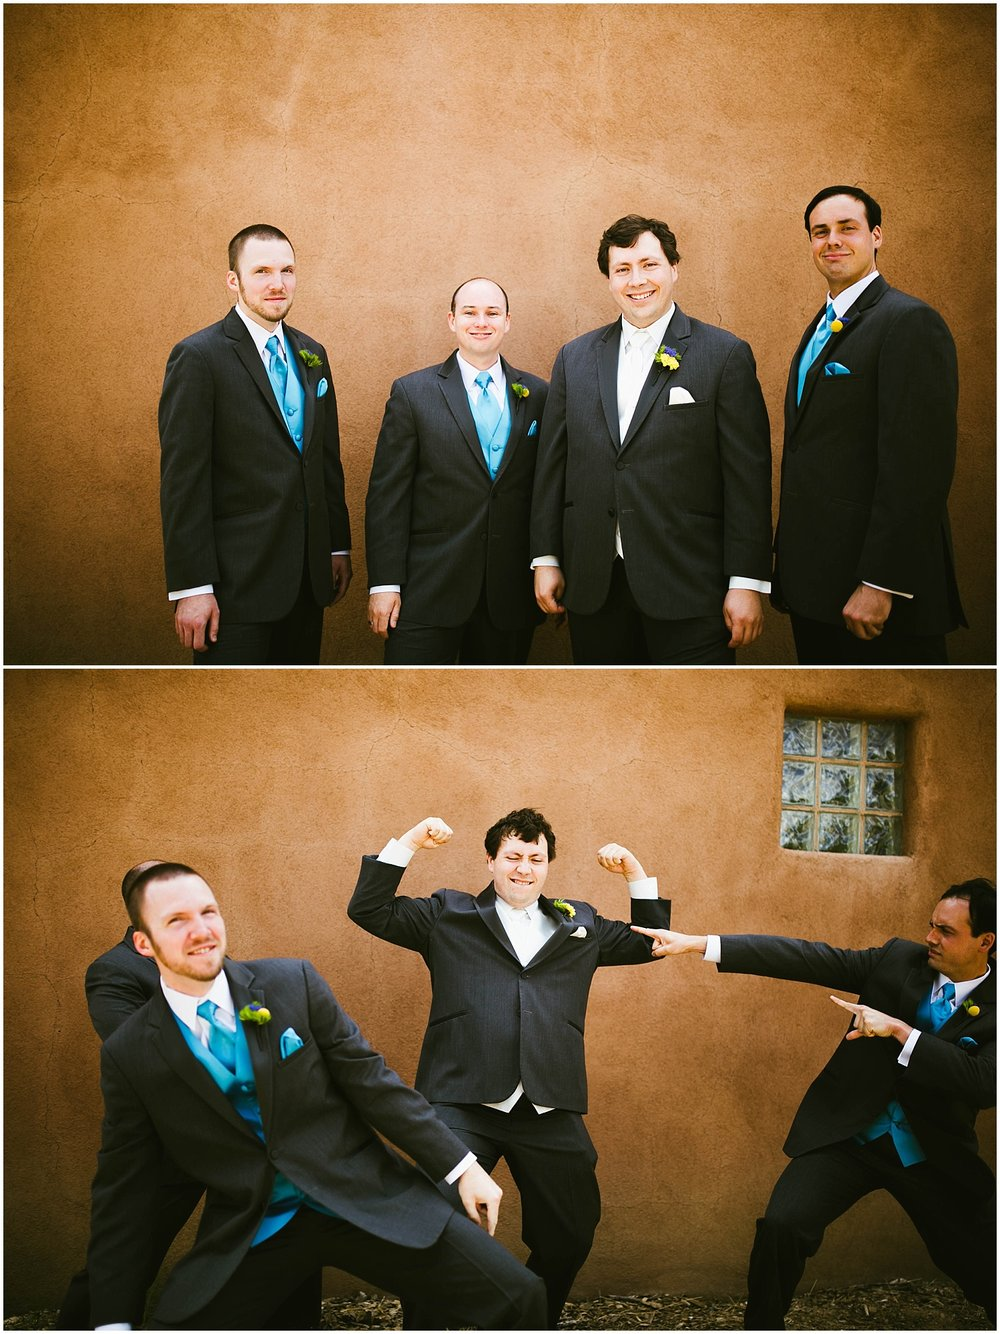 Groom Style + Groomsmen Style   Ryan proposed to Mallory at the Studio Ghibli Museum in Mitaka, Japan so it was fitting that their beautiful wedding day at Nature Pointe weddings in Tijeras, New Mexico was like a Miyazaki film come to life. A lot of planning went into their wedding. The magic of Miyazaki's films is unlike any other so incorporating the magnificence of his imagination into Mallory + Ryan's wedding day was a must. The intricacy of their wedding details were absolutely AMAZING!